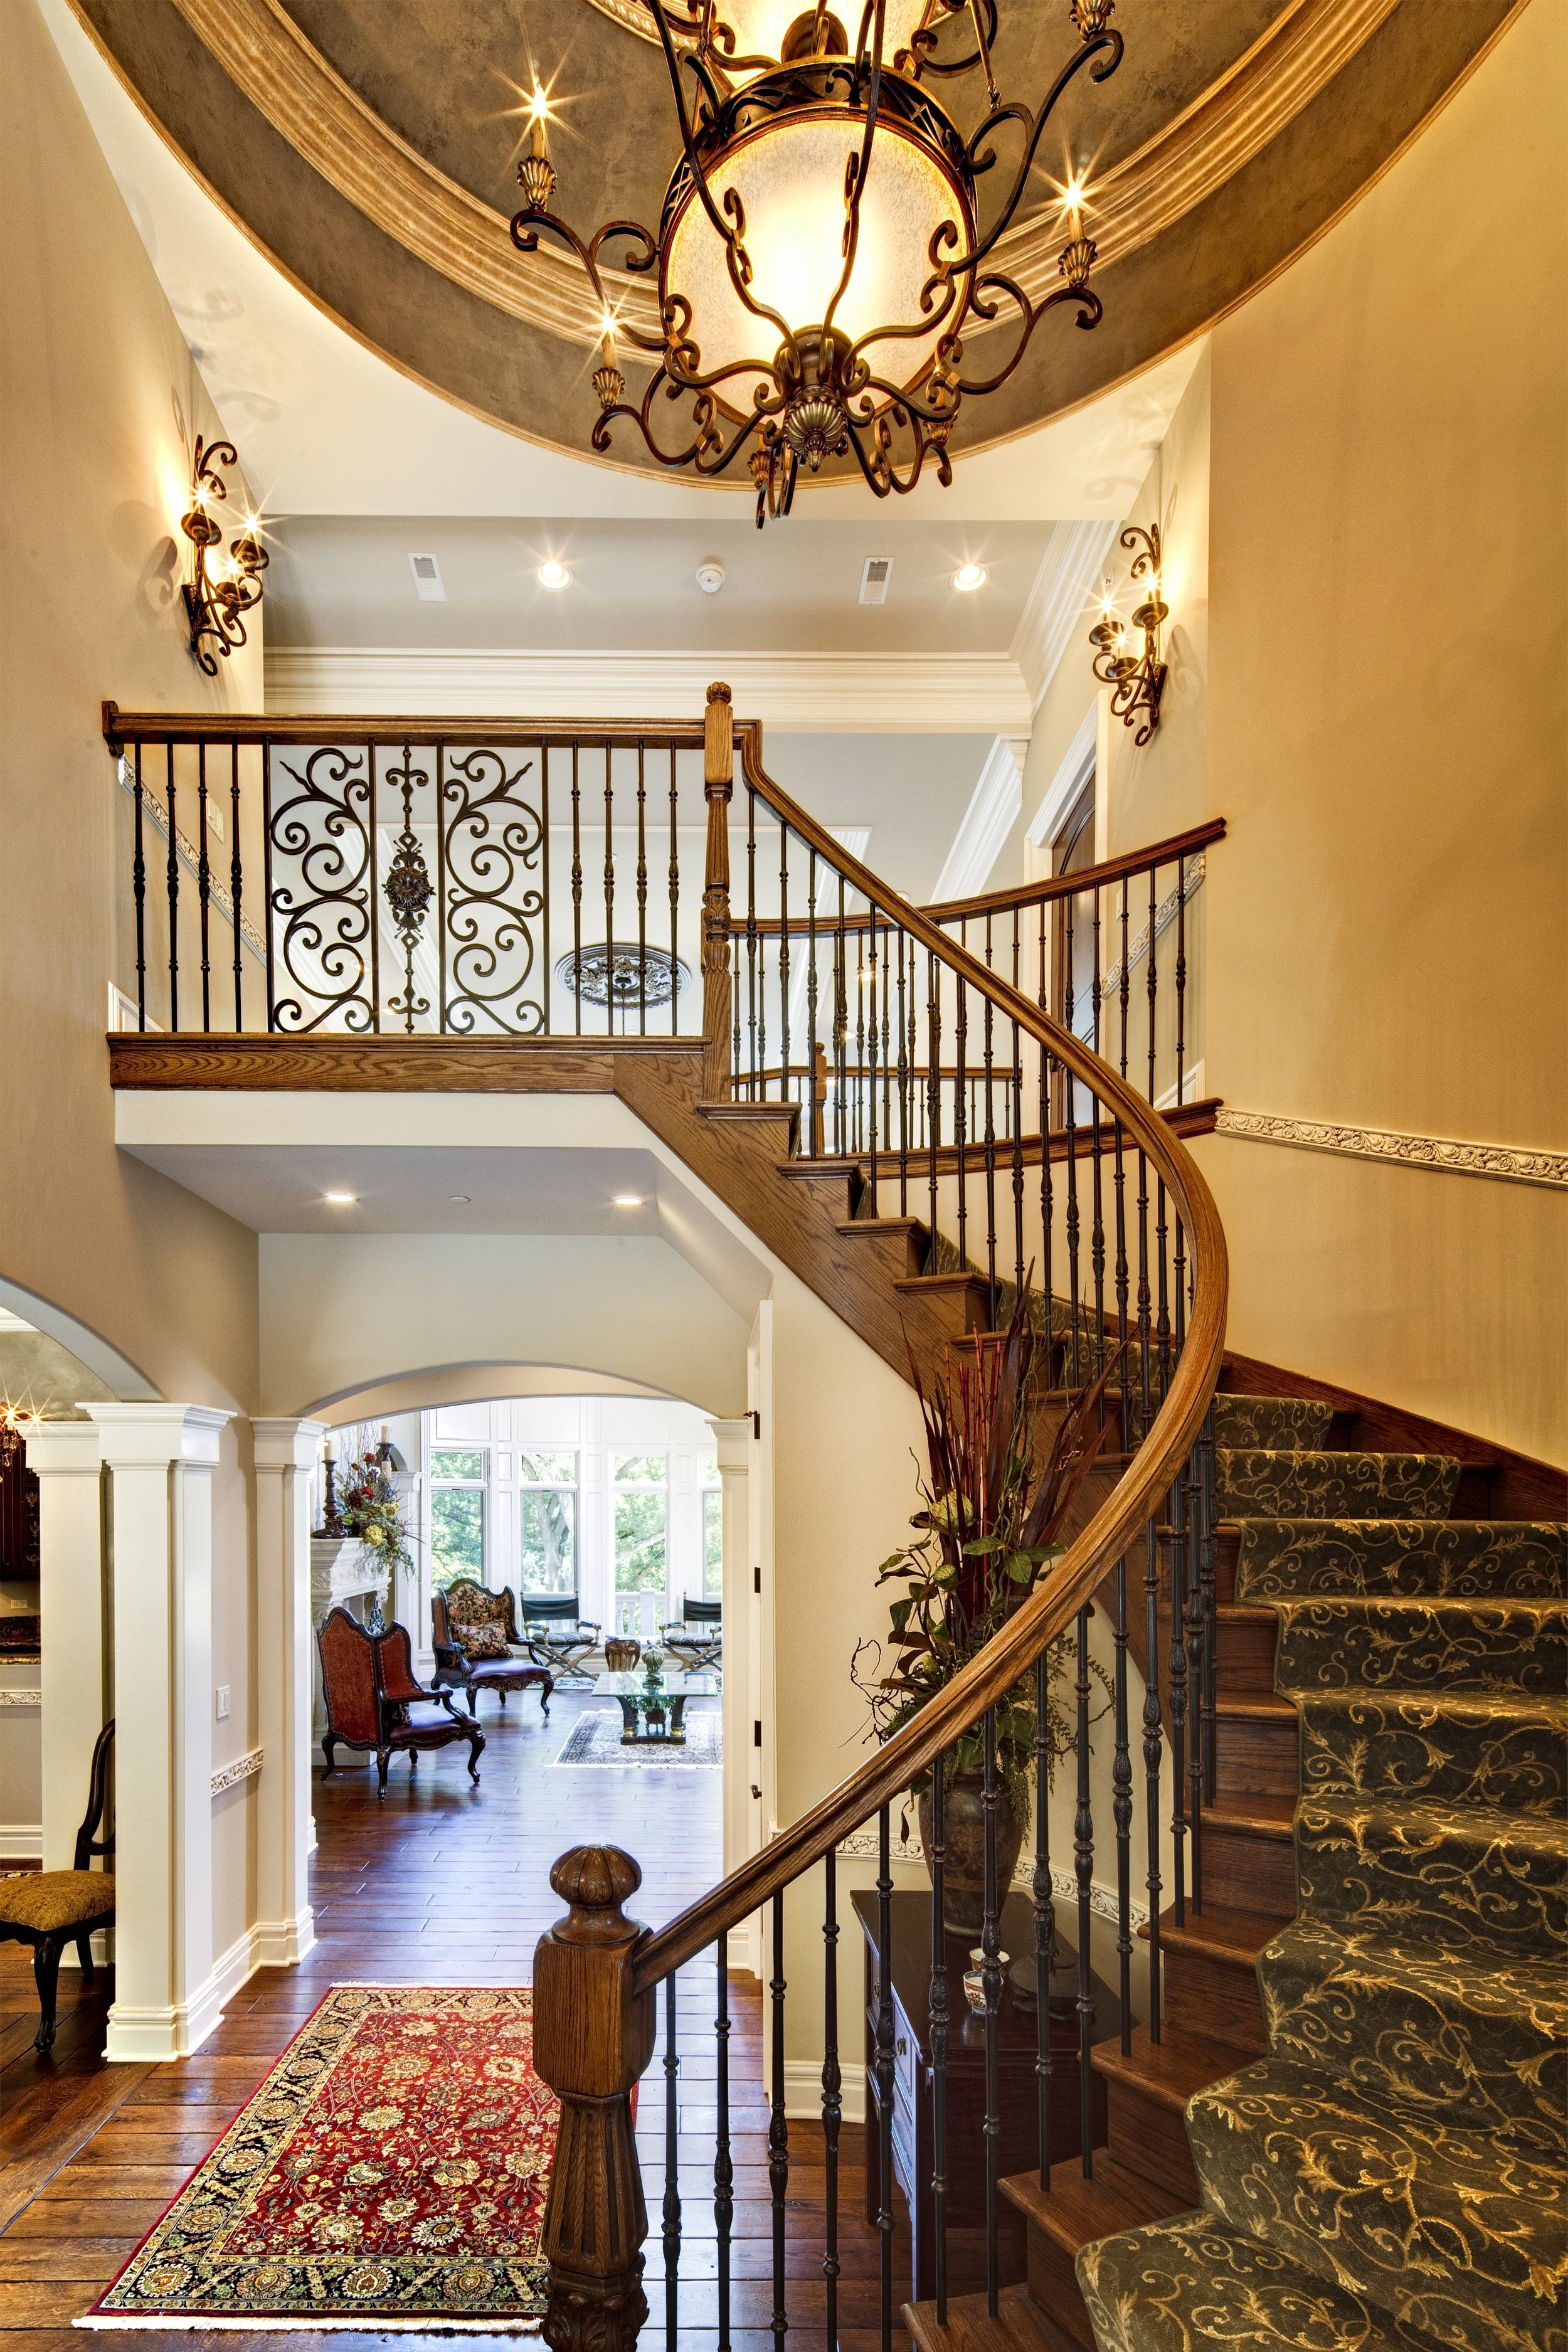 CUSTOM CURVED FOYER STAIRCASE